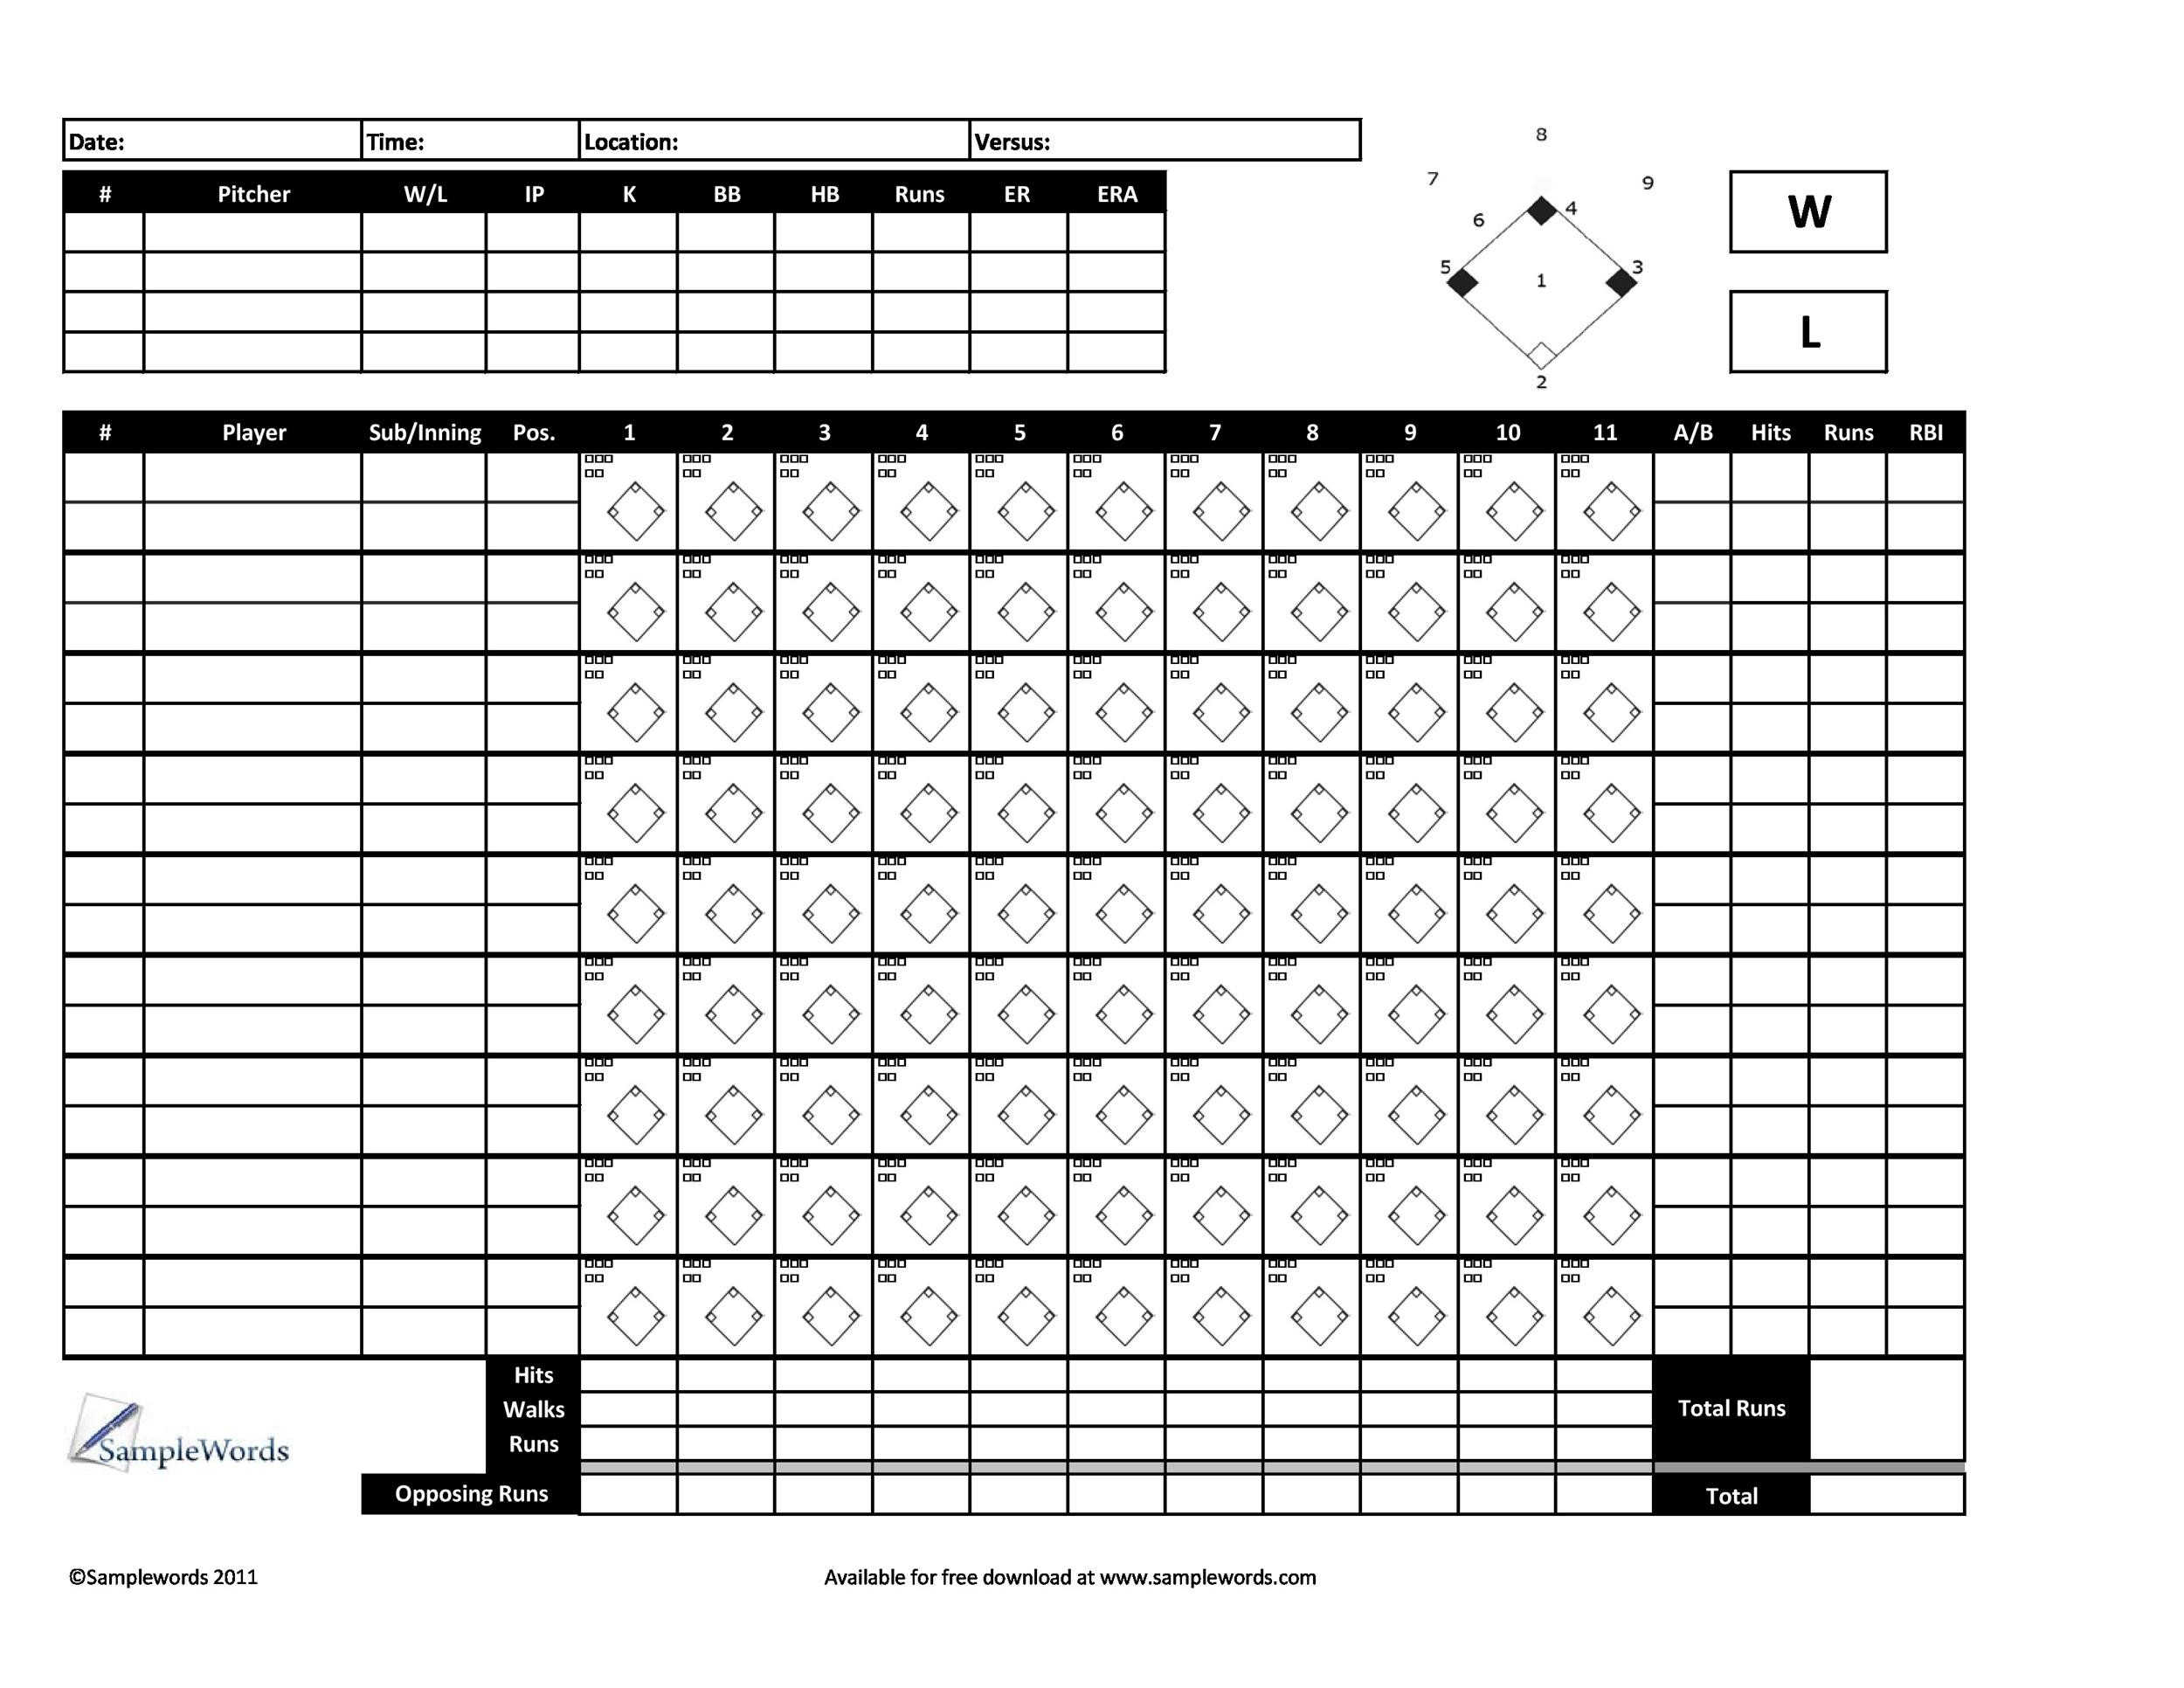 photo regarding Baseball Scorebook Printable named 30+ Printable Baseball Scoresheet / Scorecard Templates ᐅ